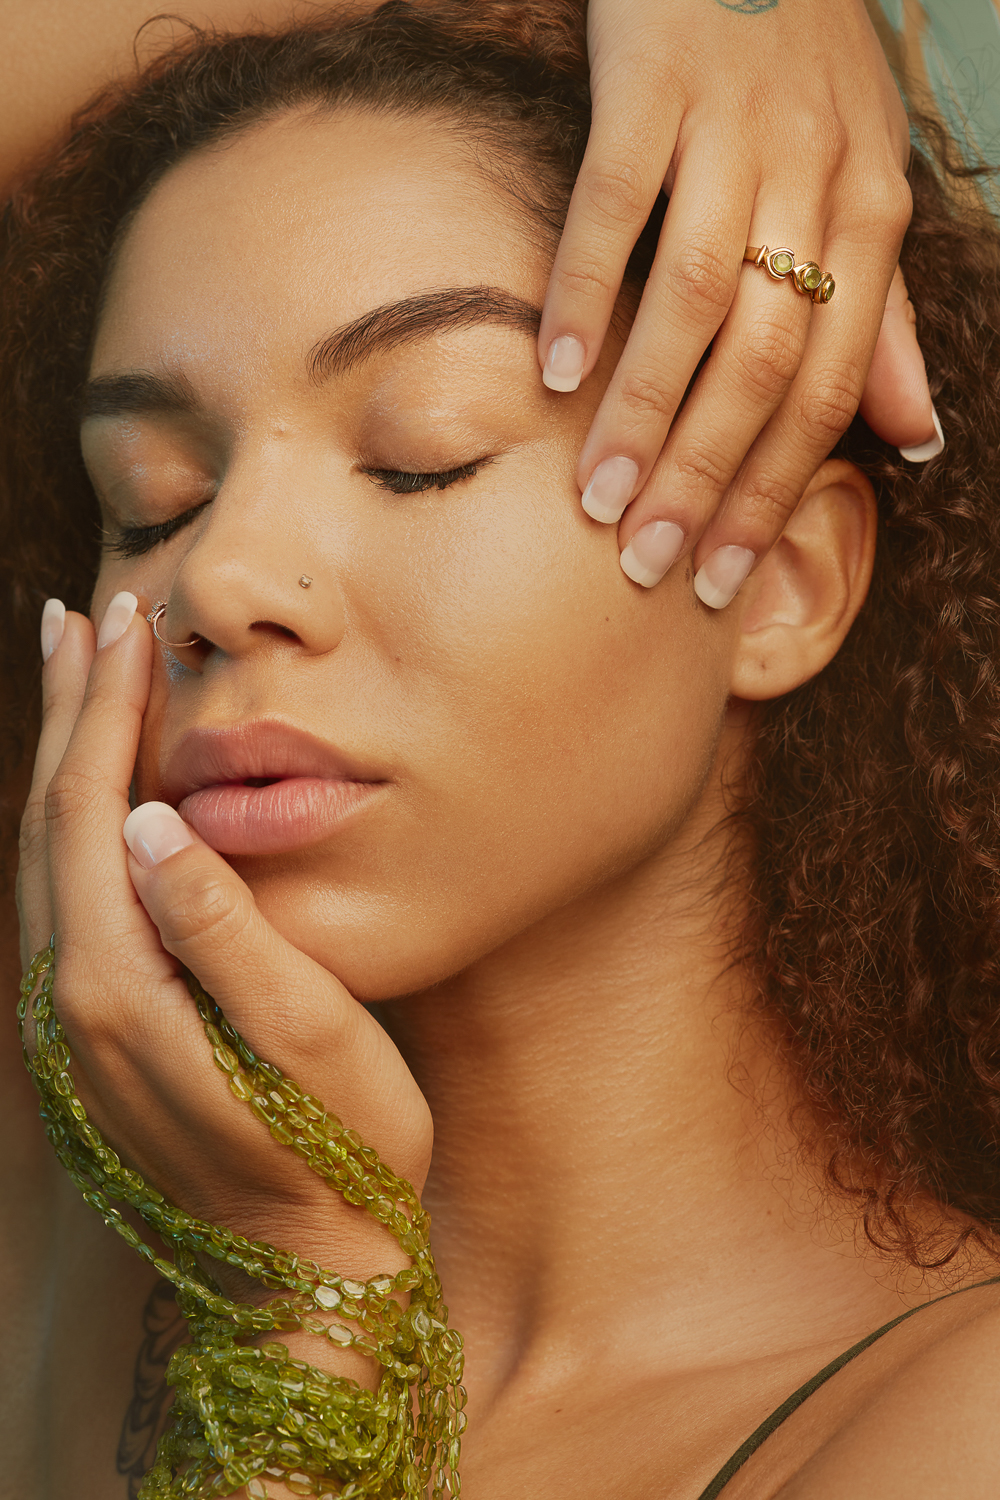 Peridot jewelry ad image, dreamy portrait with hands on face by SF jewelry photographer Ella Sophie